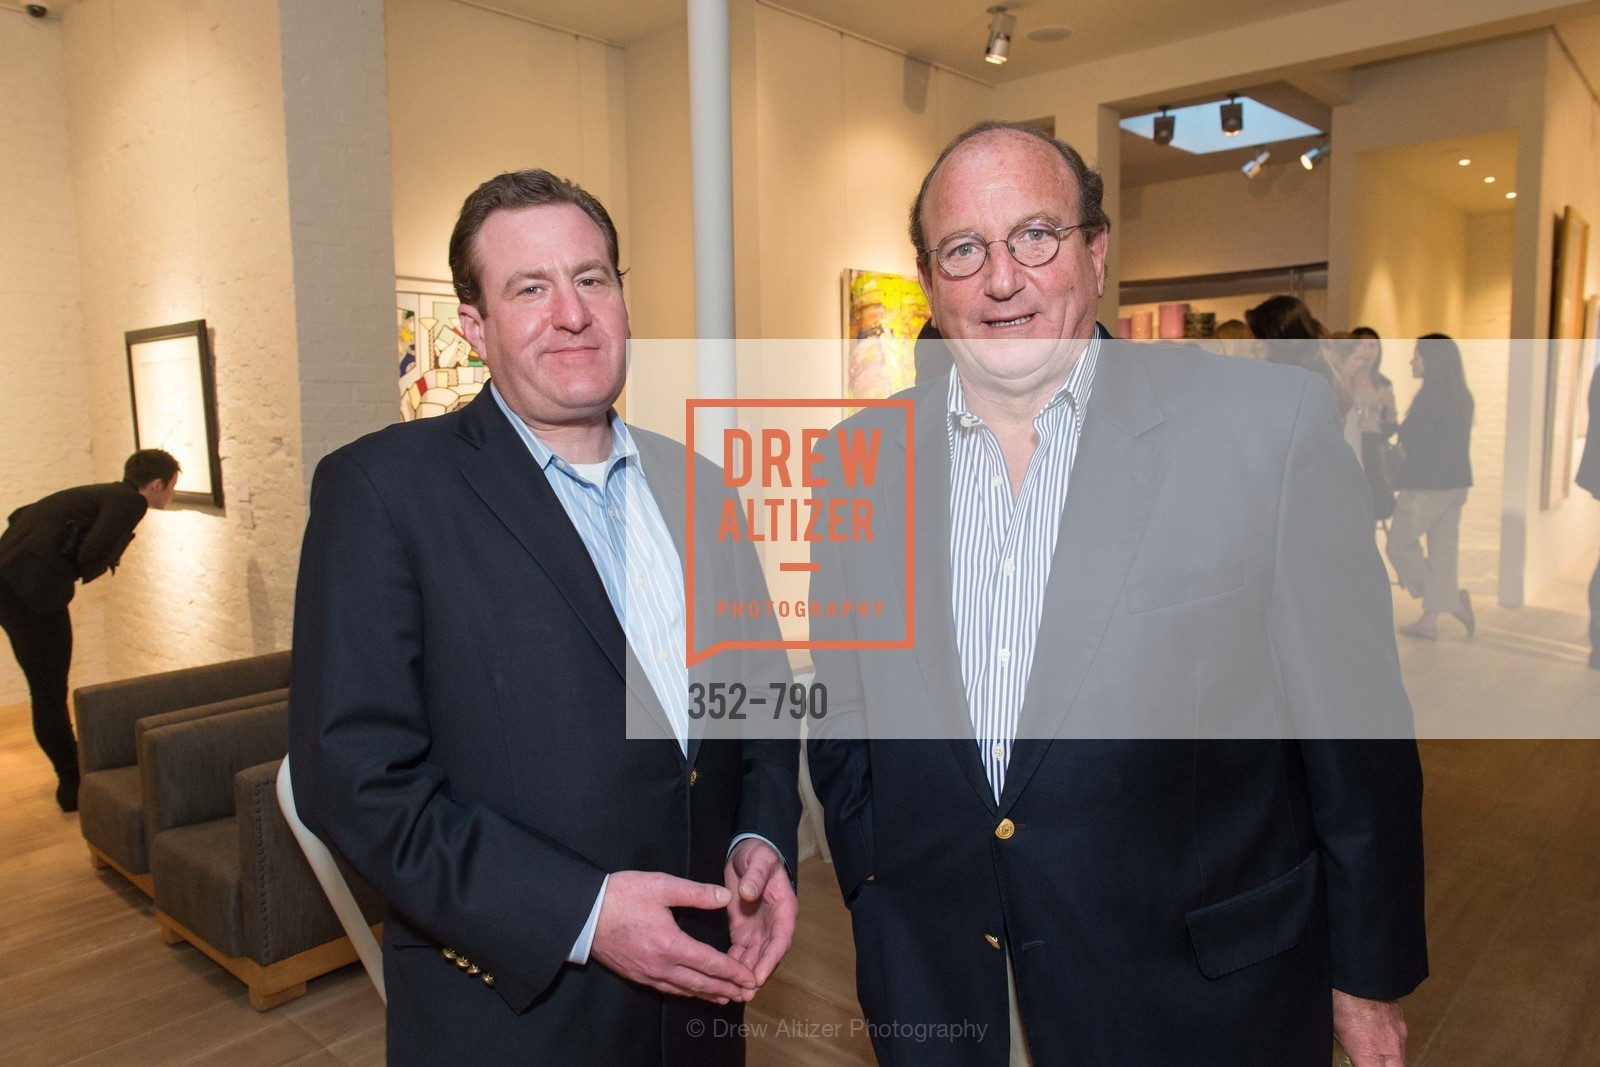 Blake Tippett, Russell Notides, Post War and Contemporary Preview at HEDGE GALLERY, US, April 15th, 2015,Drew Altizer, Drew Altizer Photography, full-service agency, private events, San Francisco photographer, photographer california